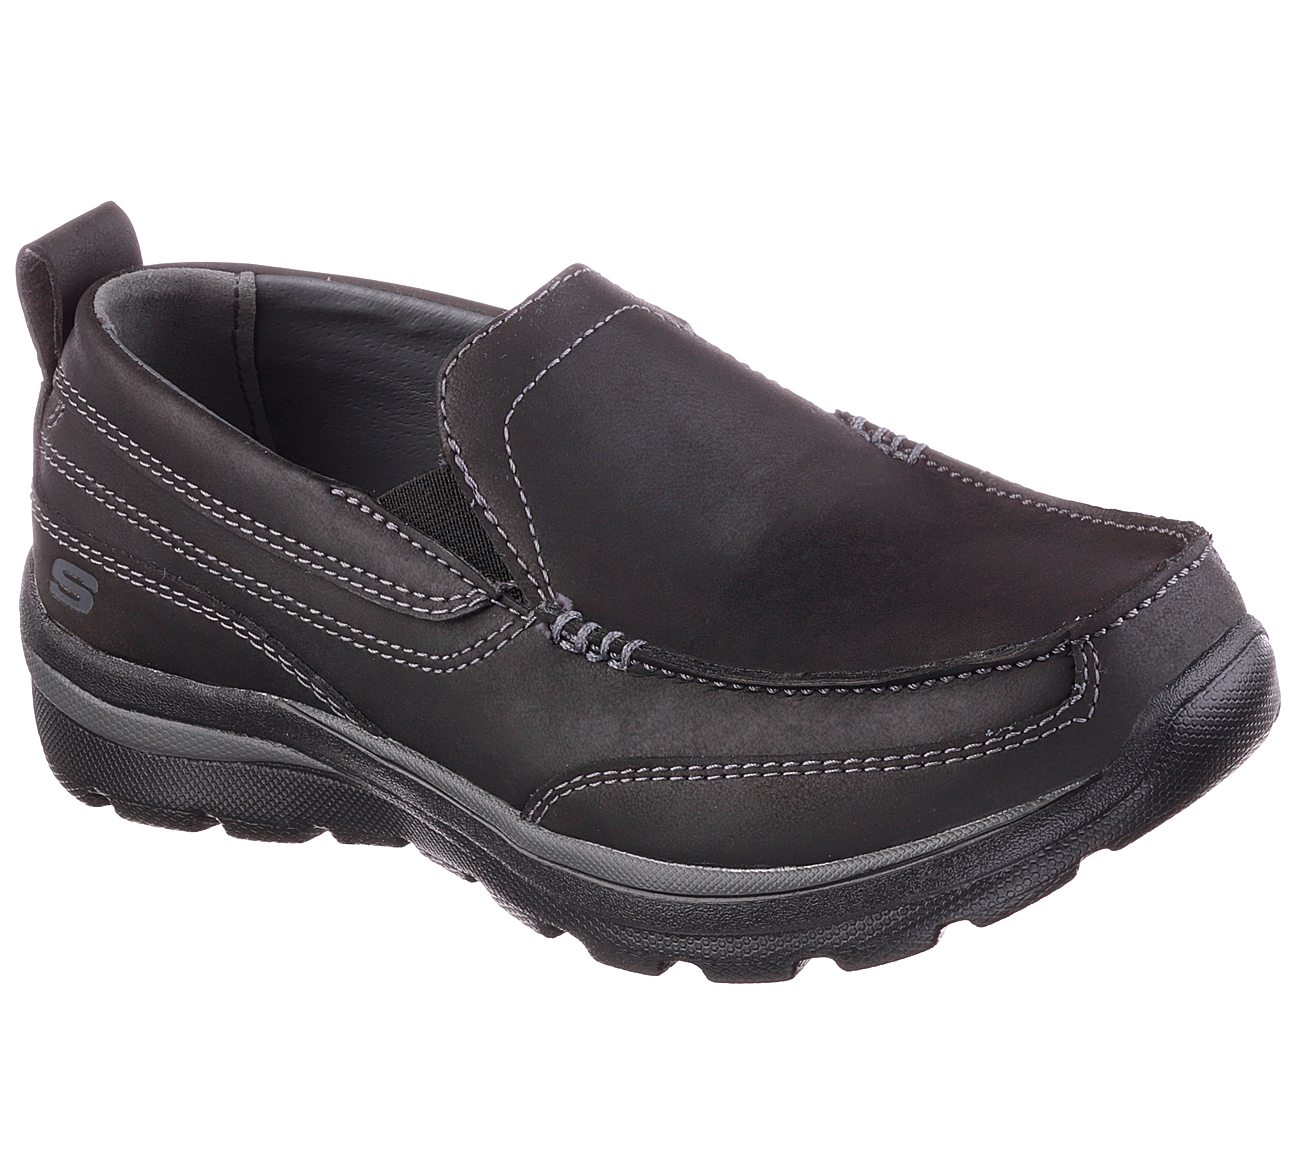 6f130e81d7defe Buy SKECHERS Relaxed Fit: Superior - Gains Comfort Shoes Shoes only ...